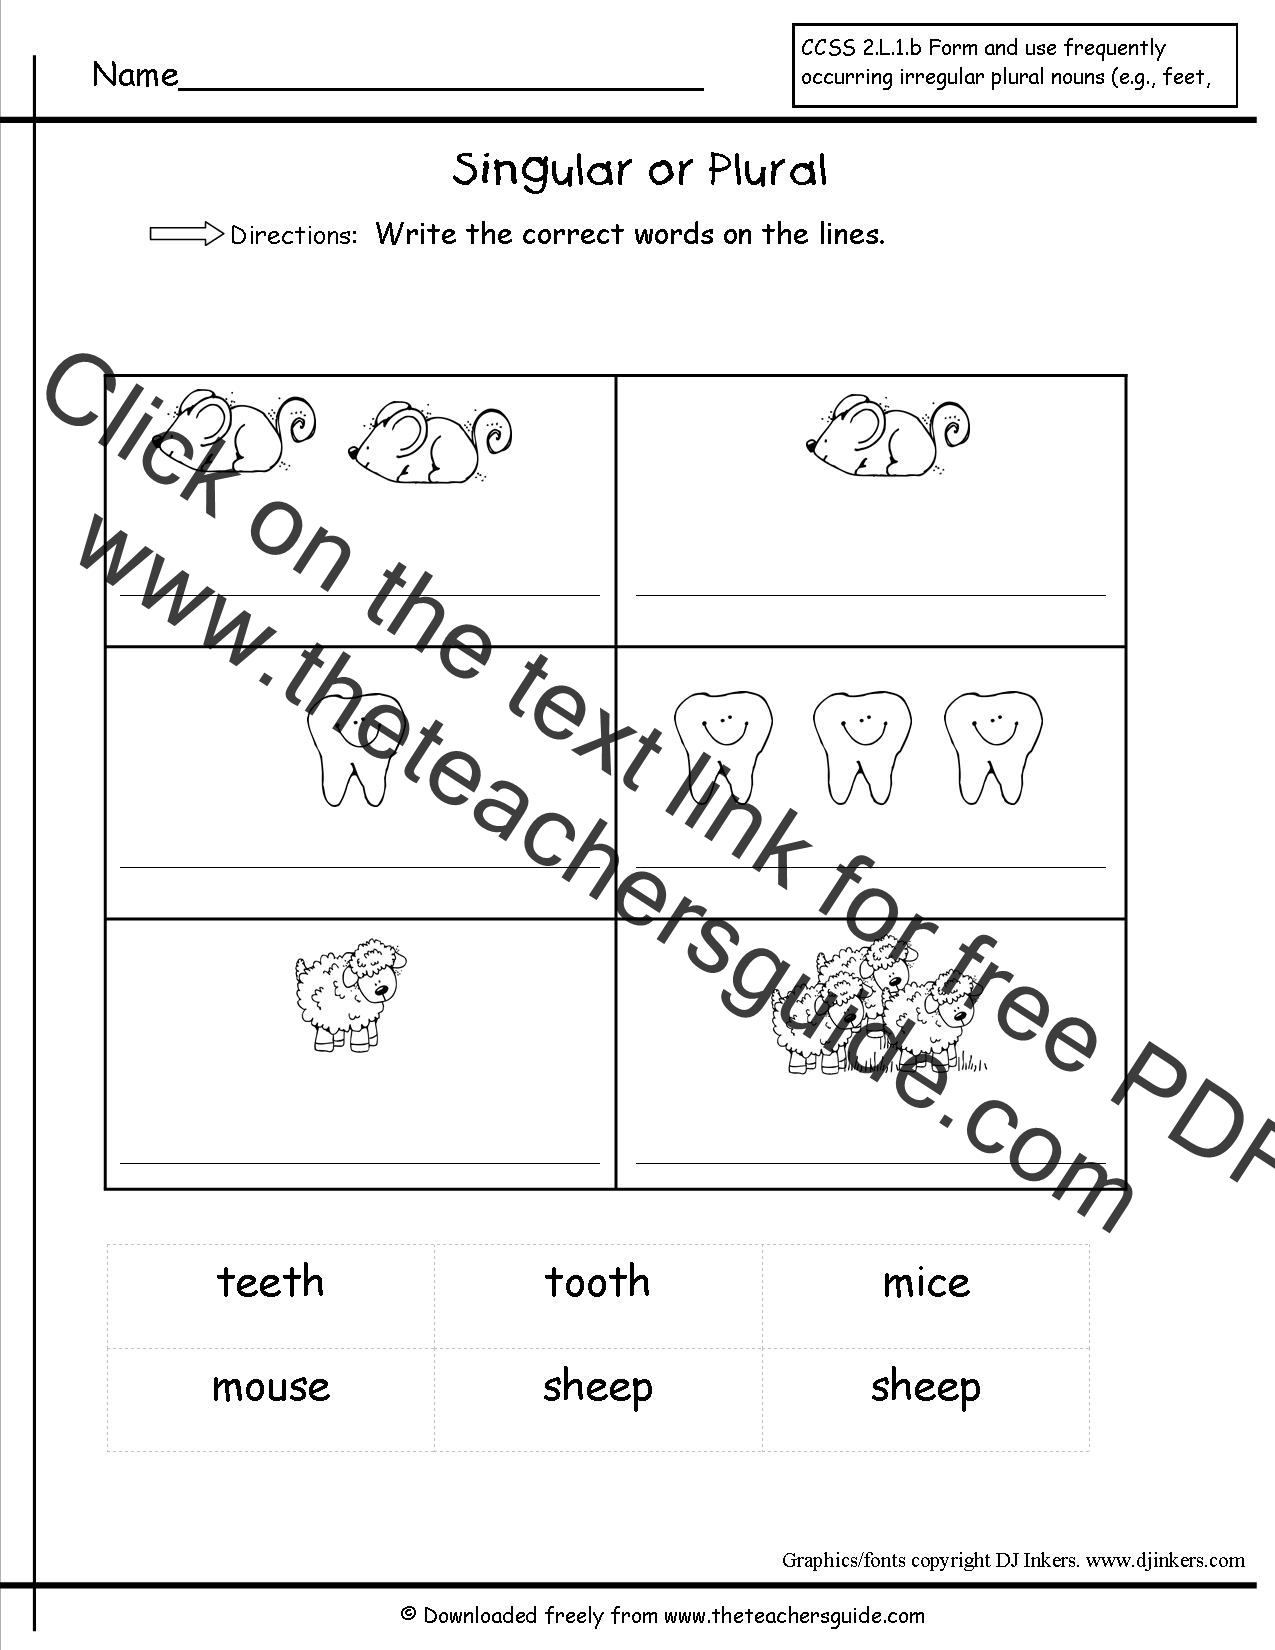 Singular and Plural Nouns Worksheets from The Teachers Guide – Nouns Worksheets